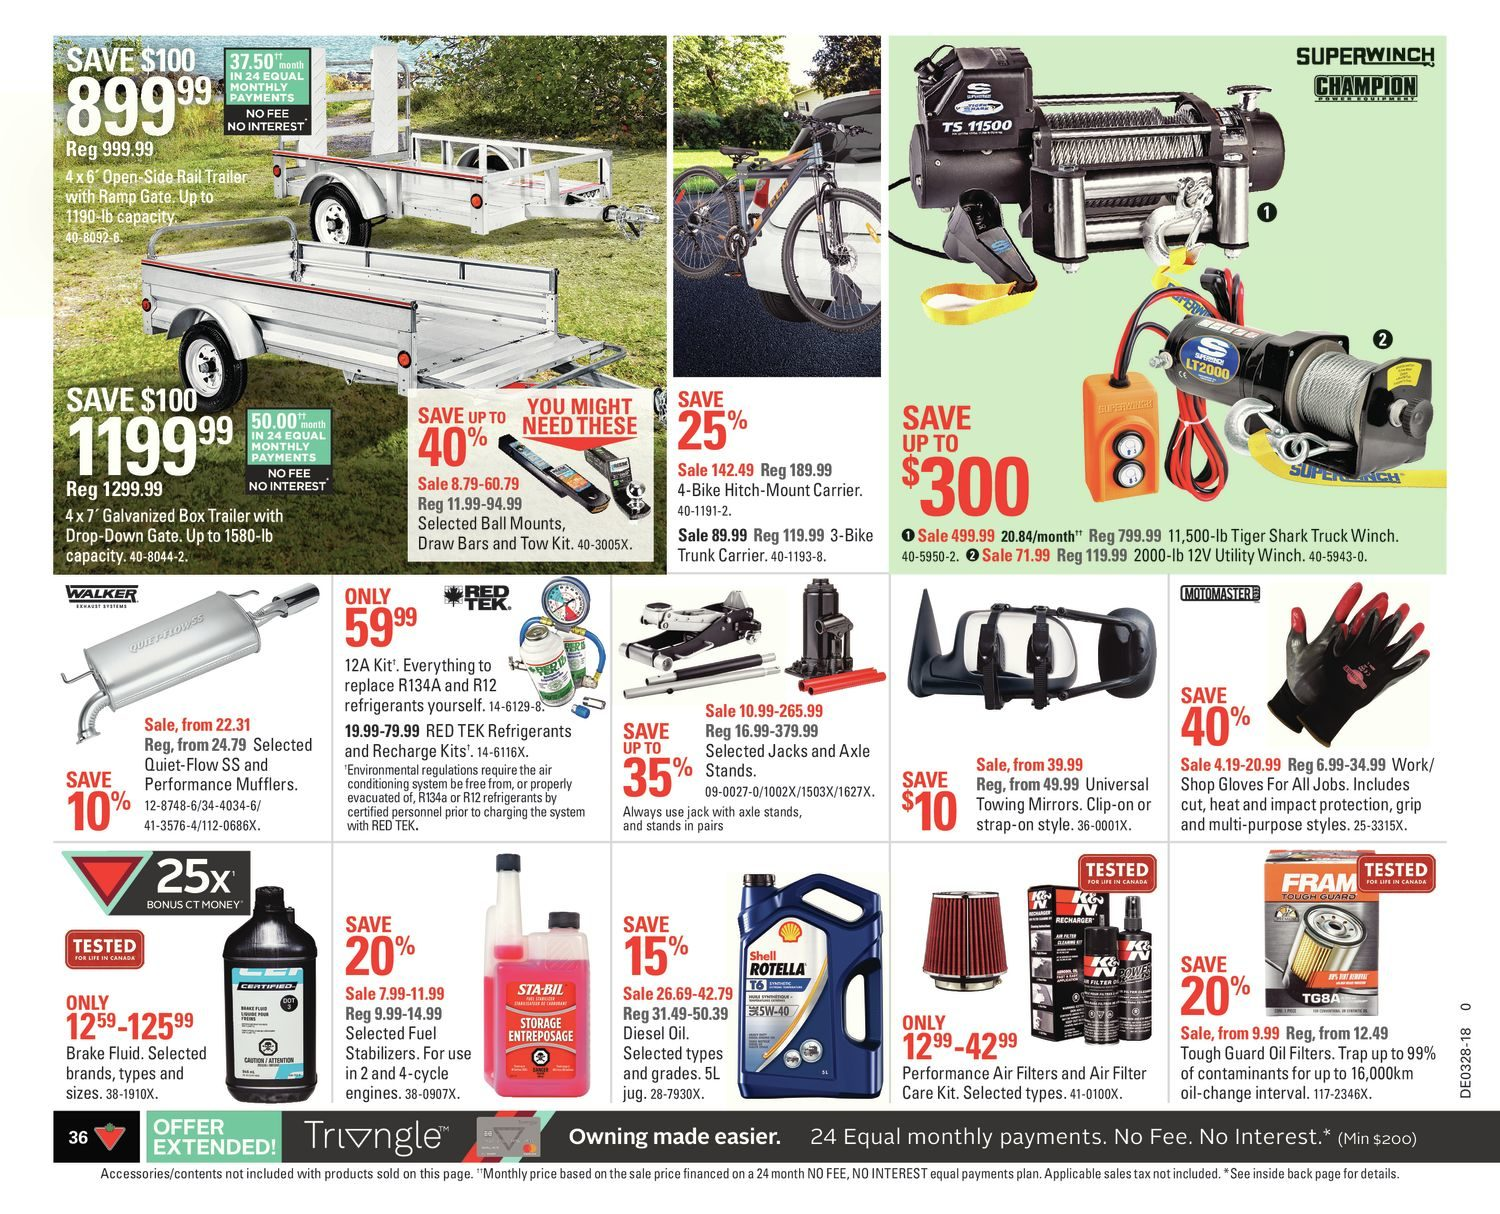 Canadian Tire Weekly Flyer Summers On Jul 6 12 Vs1 R12 Indoor High Voltage Vacuum Circuit Breaker With Lateral